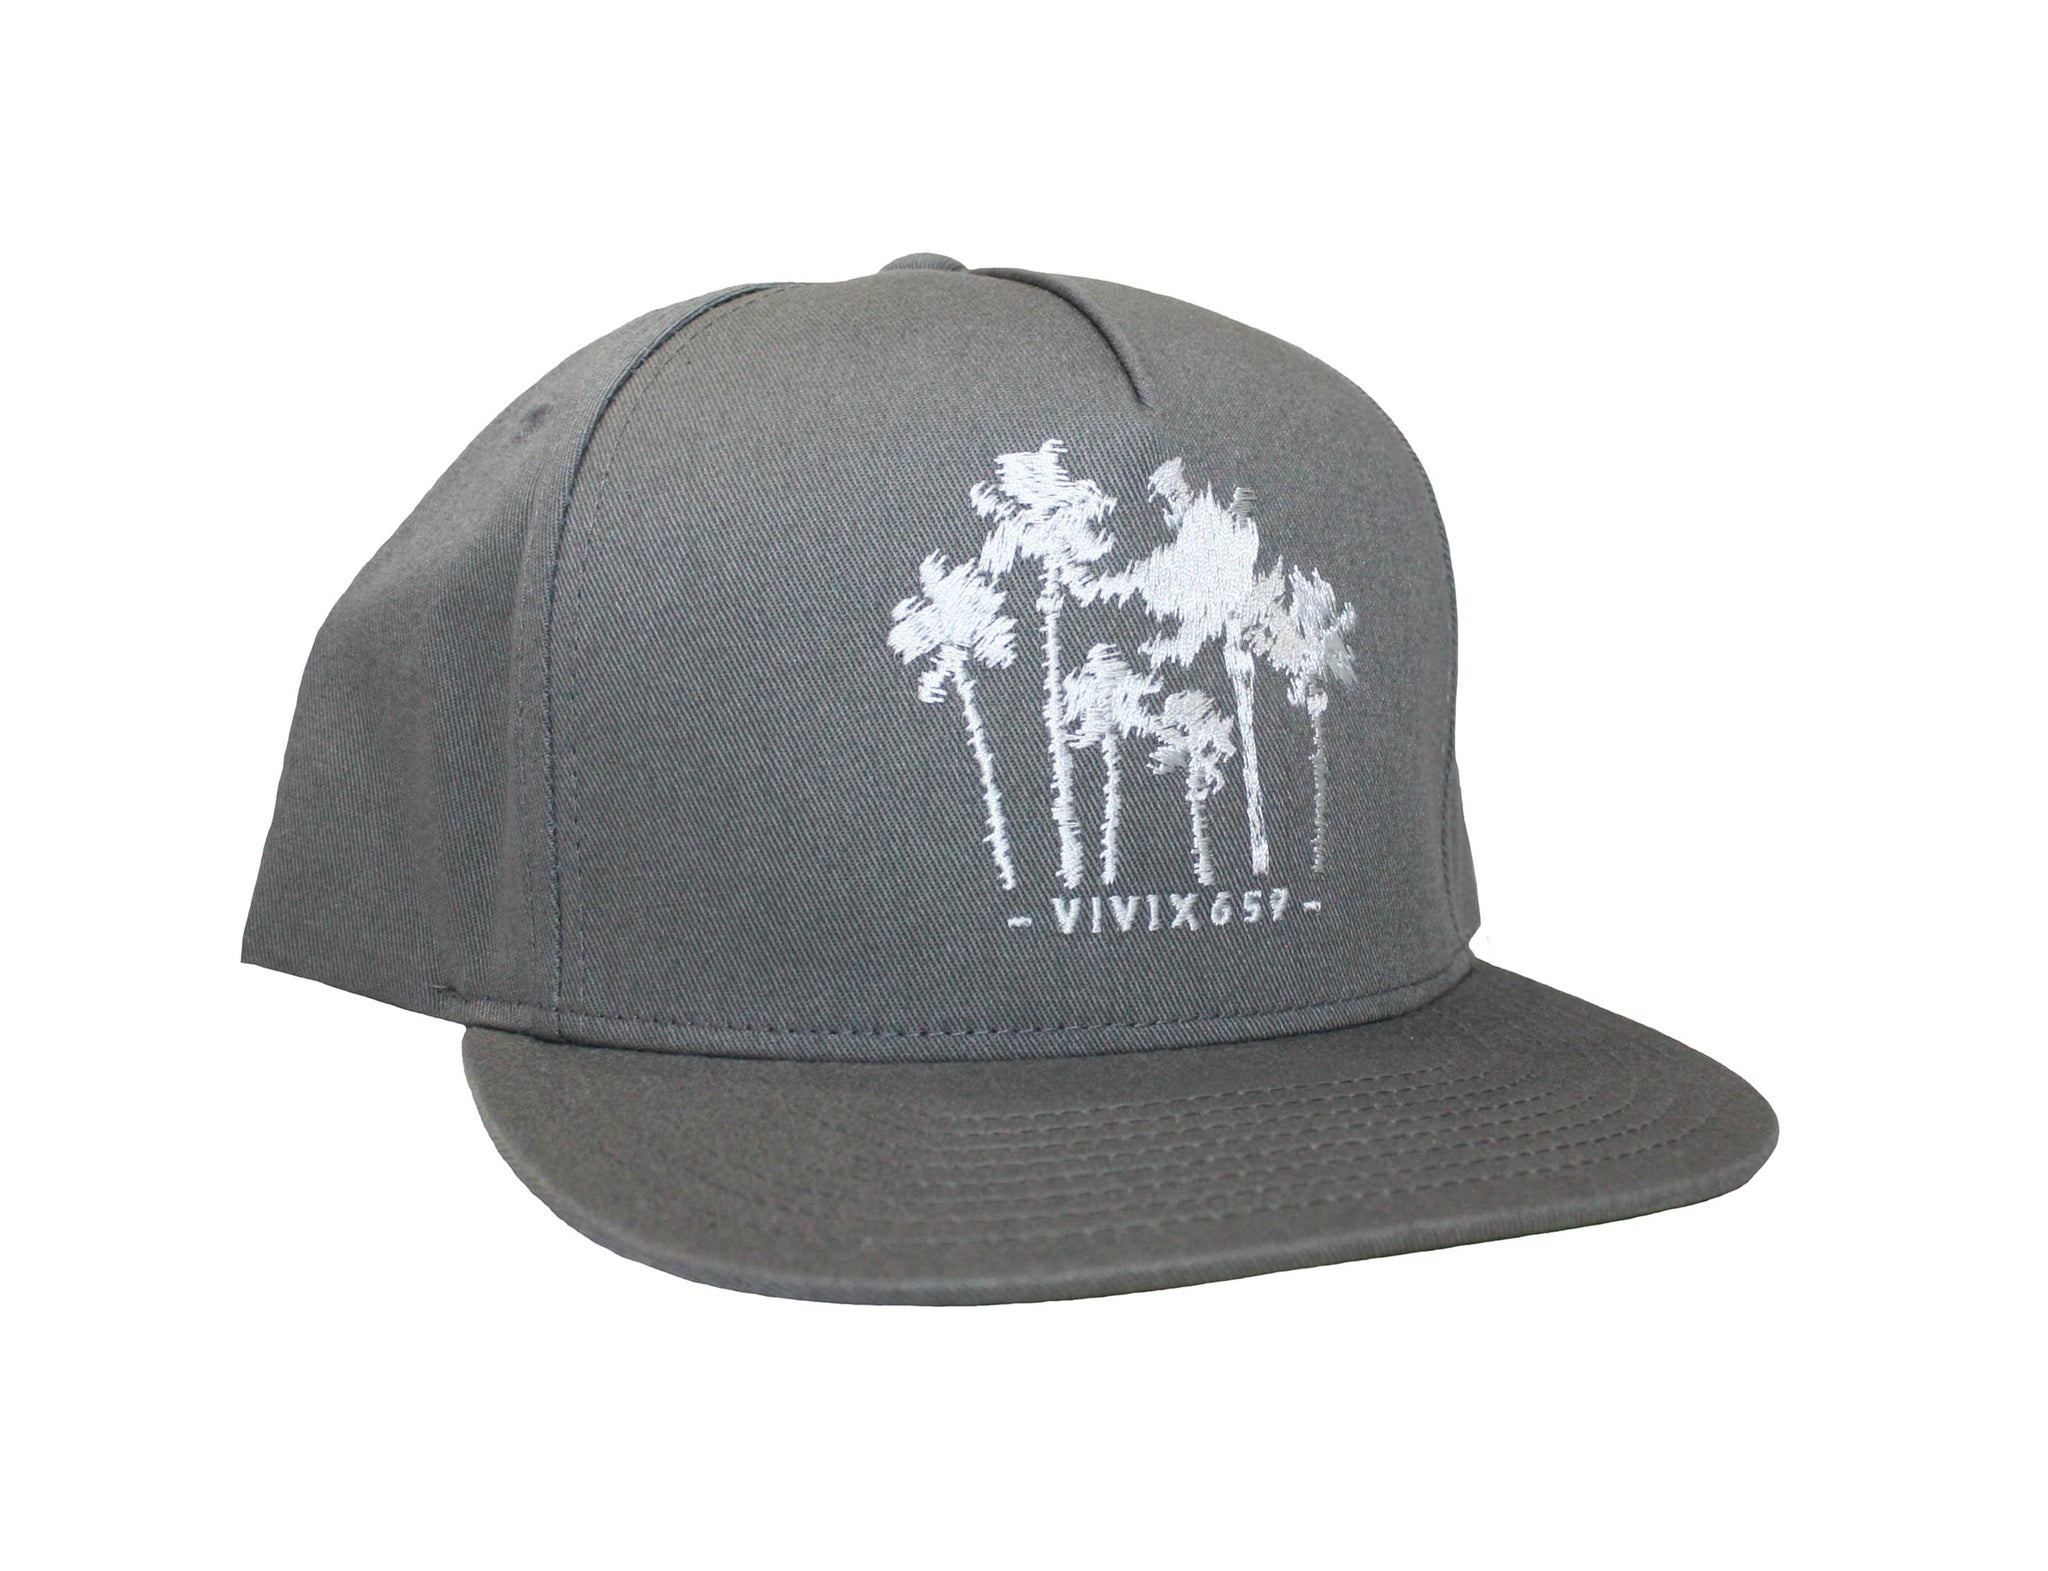 Vivix 659 embroidered palm tree hat